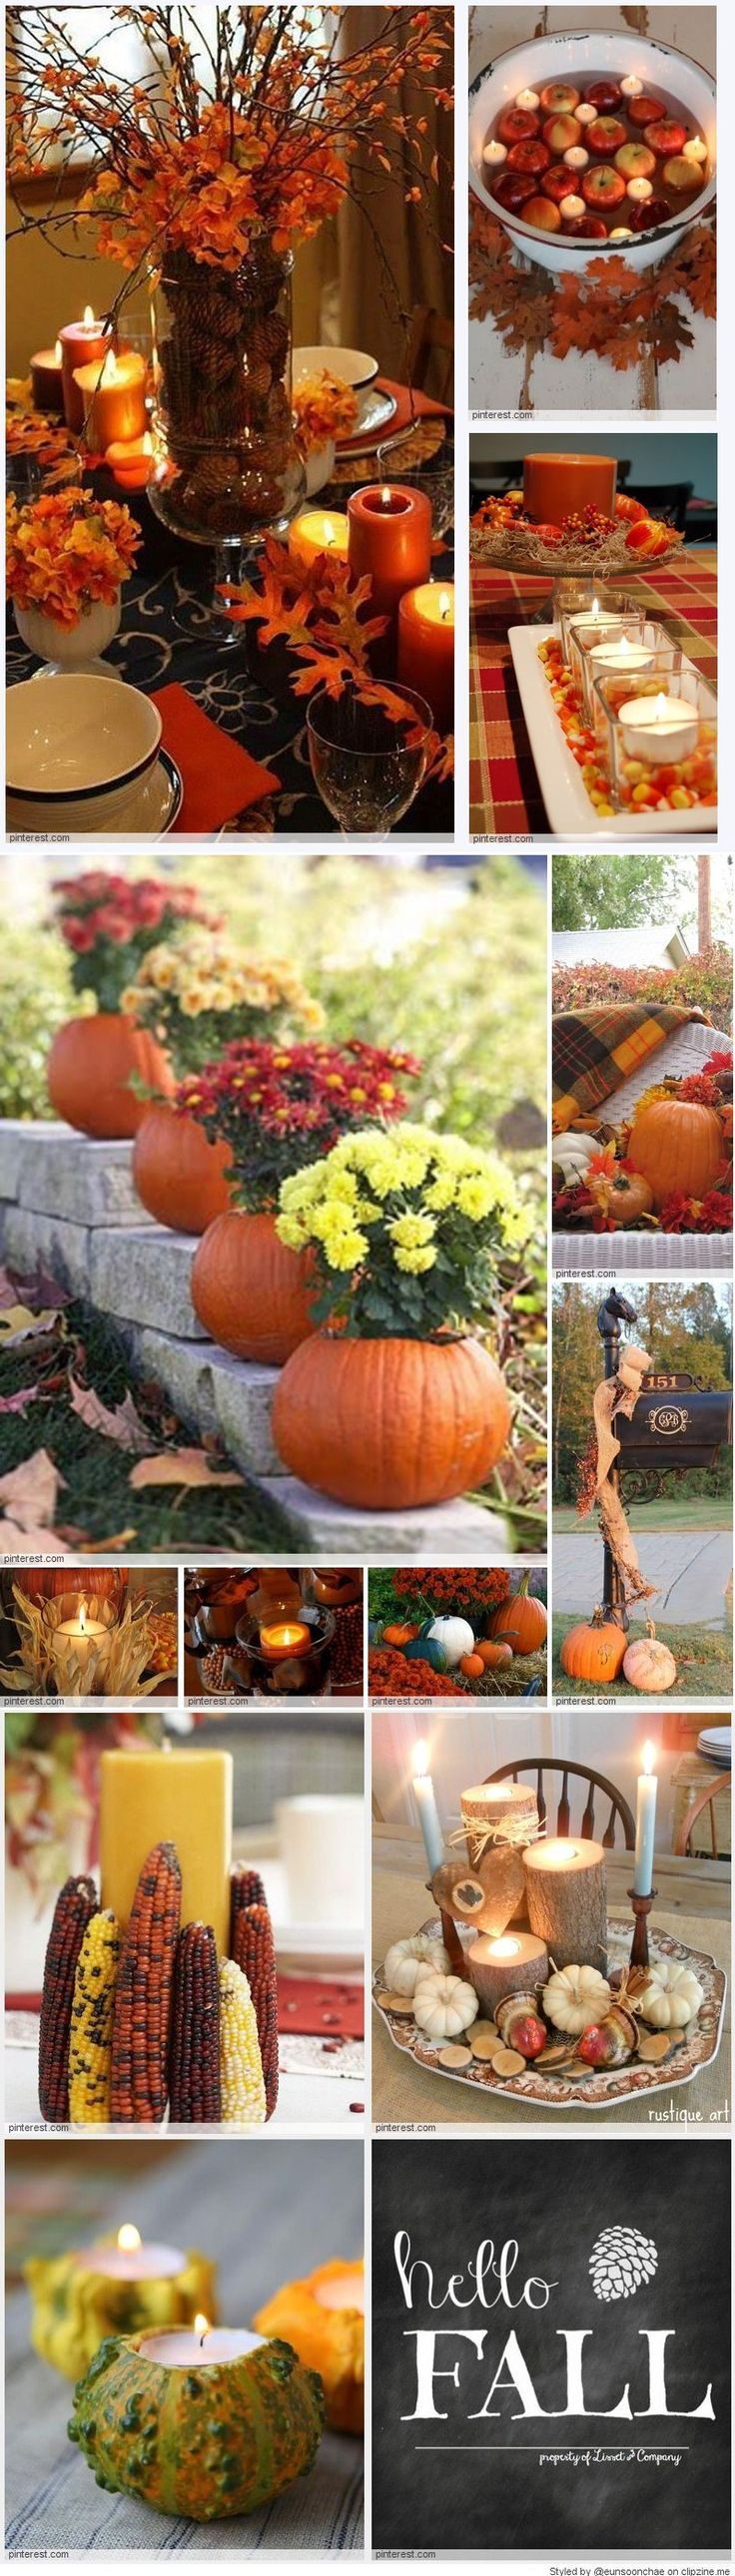 Beautiful Fall Decorating Ideas for fabulous autumn inspired home decor for your home. These centerpieces will look fabulous on my Thanksgiving table.